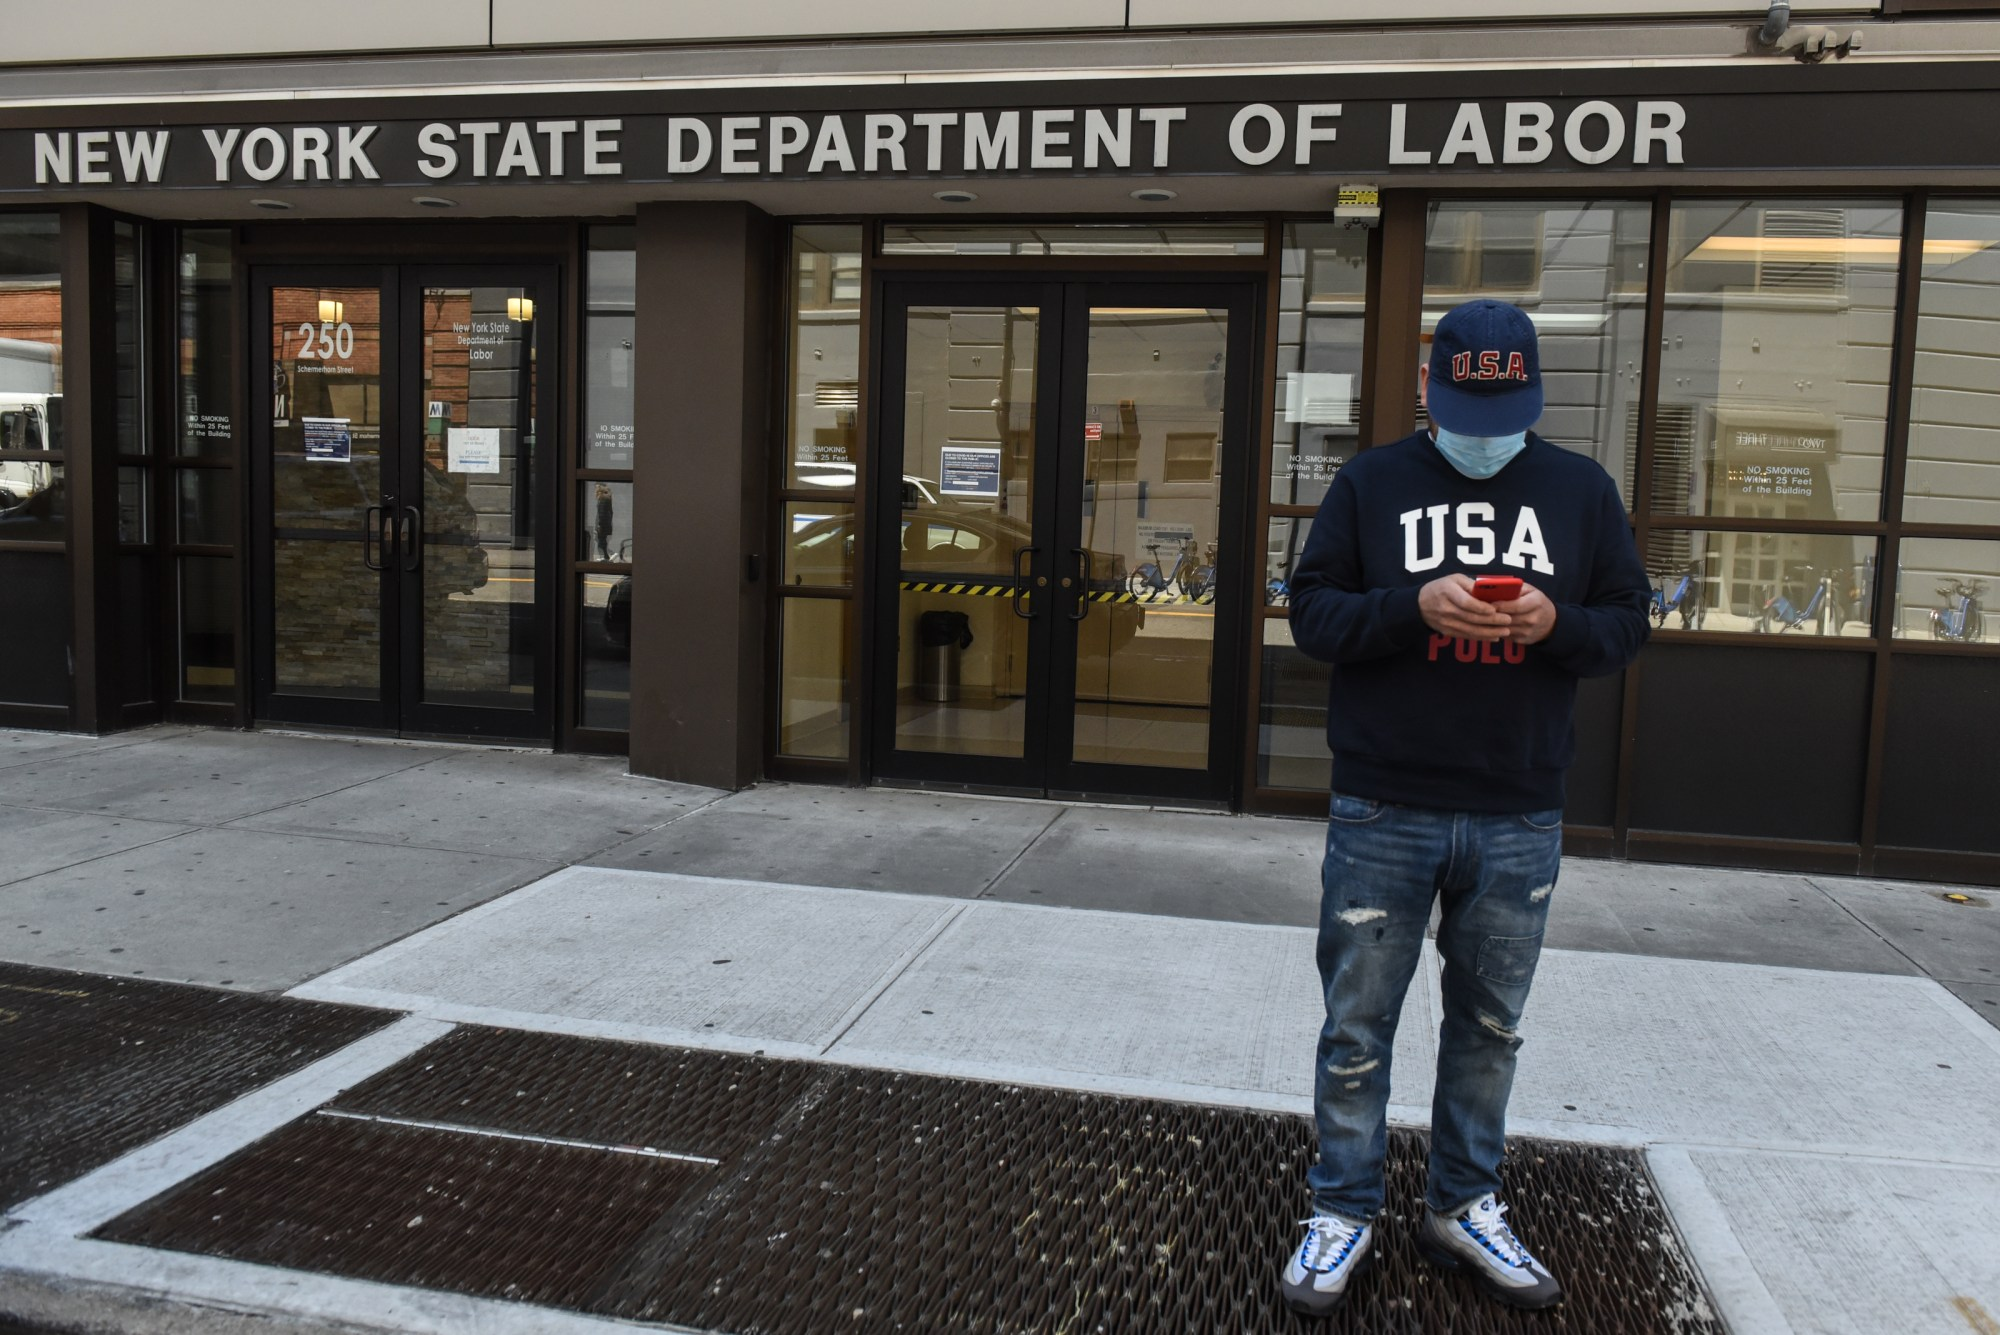 Luis Mora stands in front of the closed offices of the New York State Department of Labor on May 7, 2020 in the Brooklyn borough in New York City. (Stephanie Keith/Getty Images)